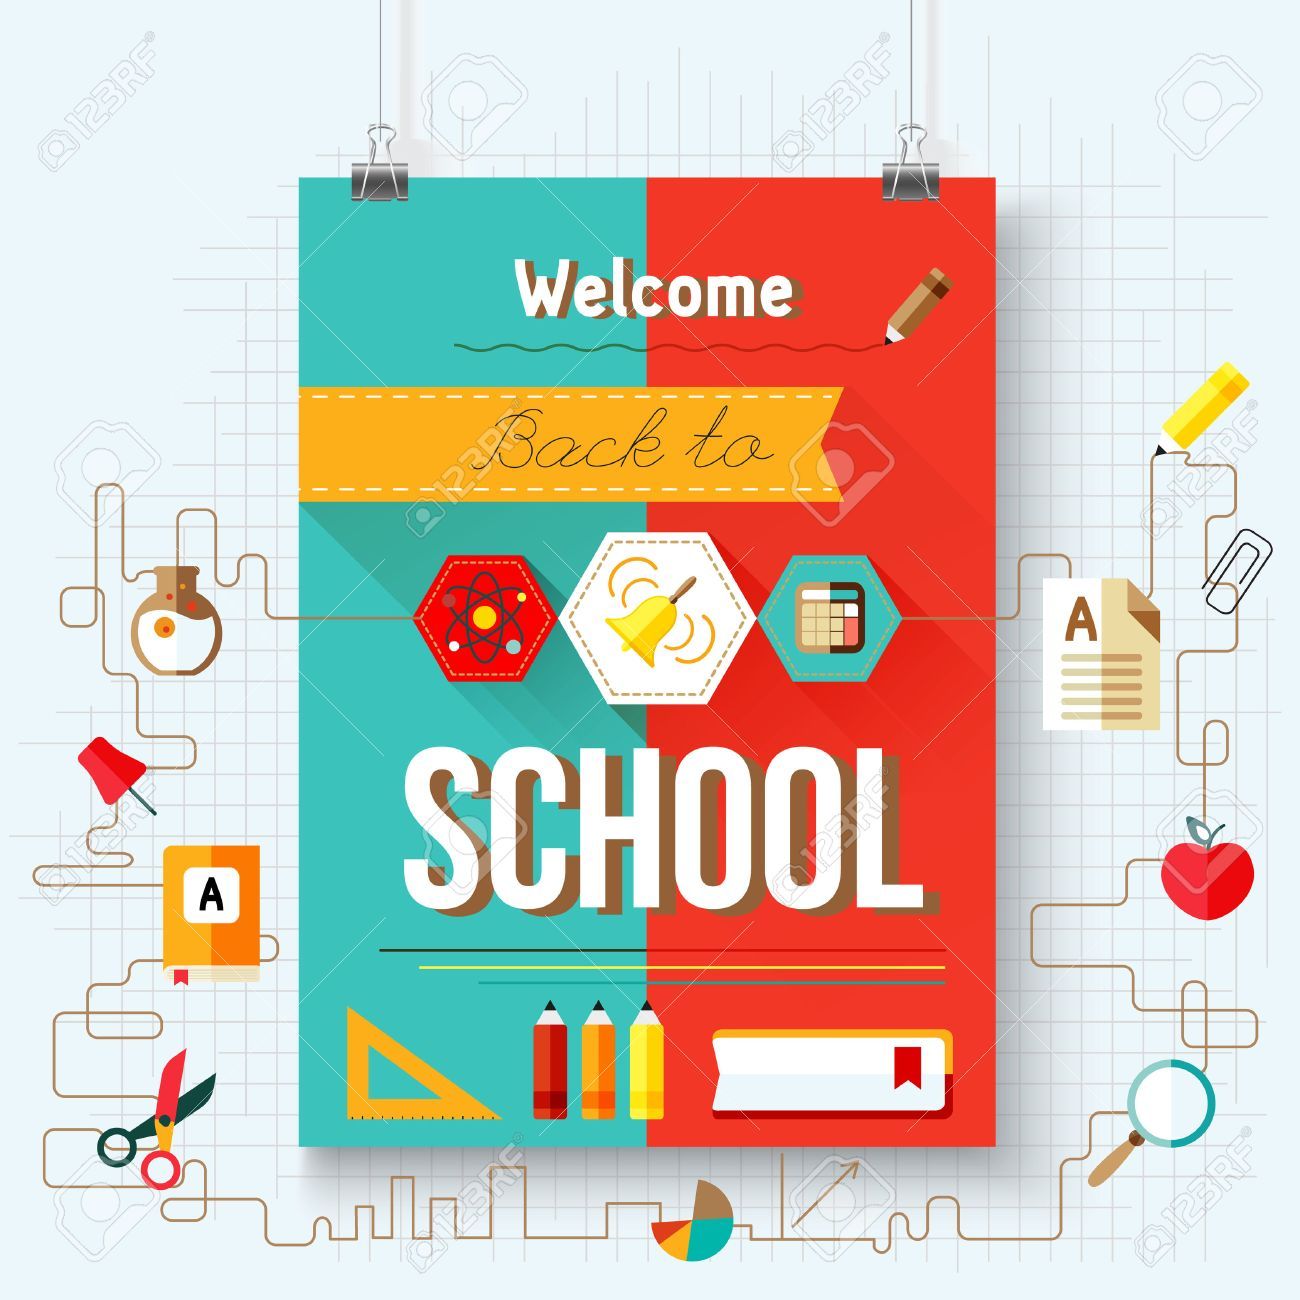 Poster design vector graphics - Back To School Vector Poster With Aicons Design Elements Stock Vector 29979589